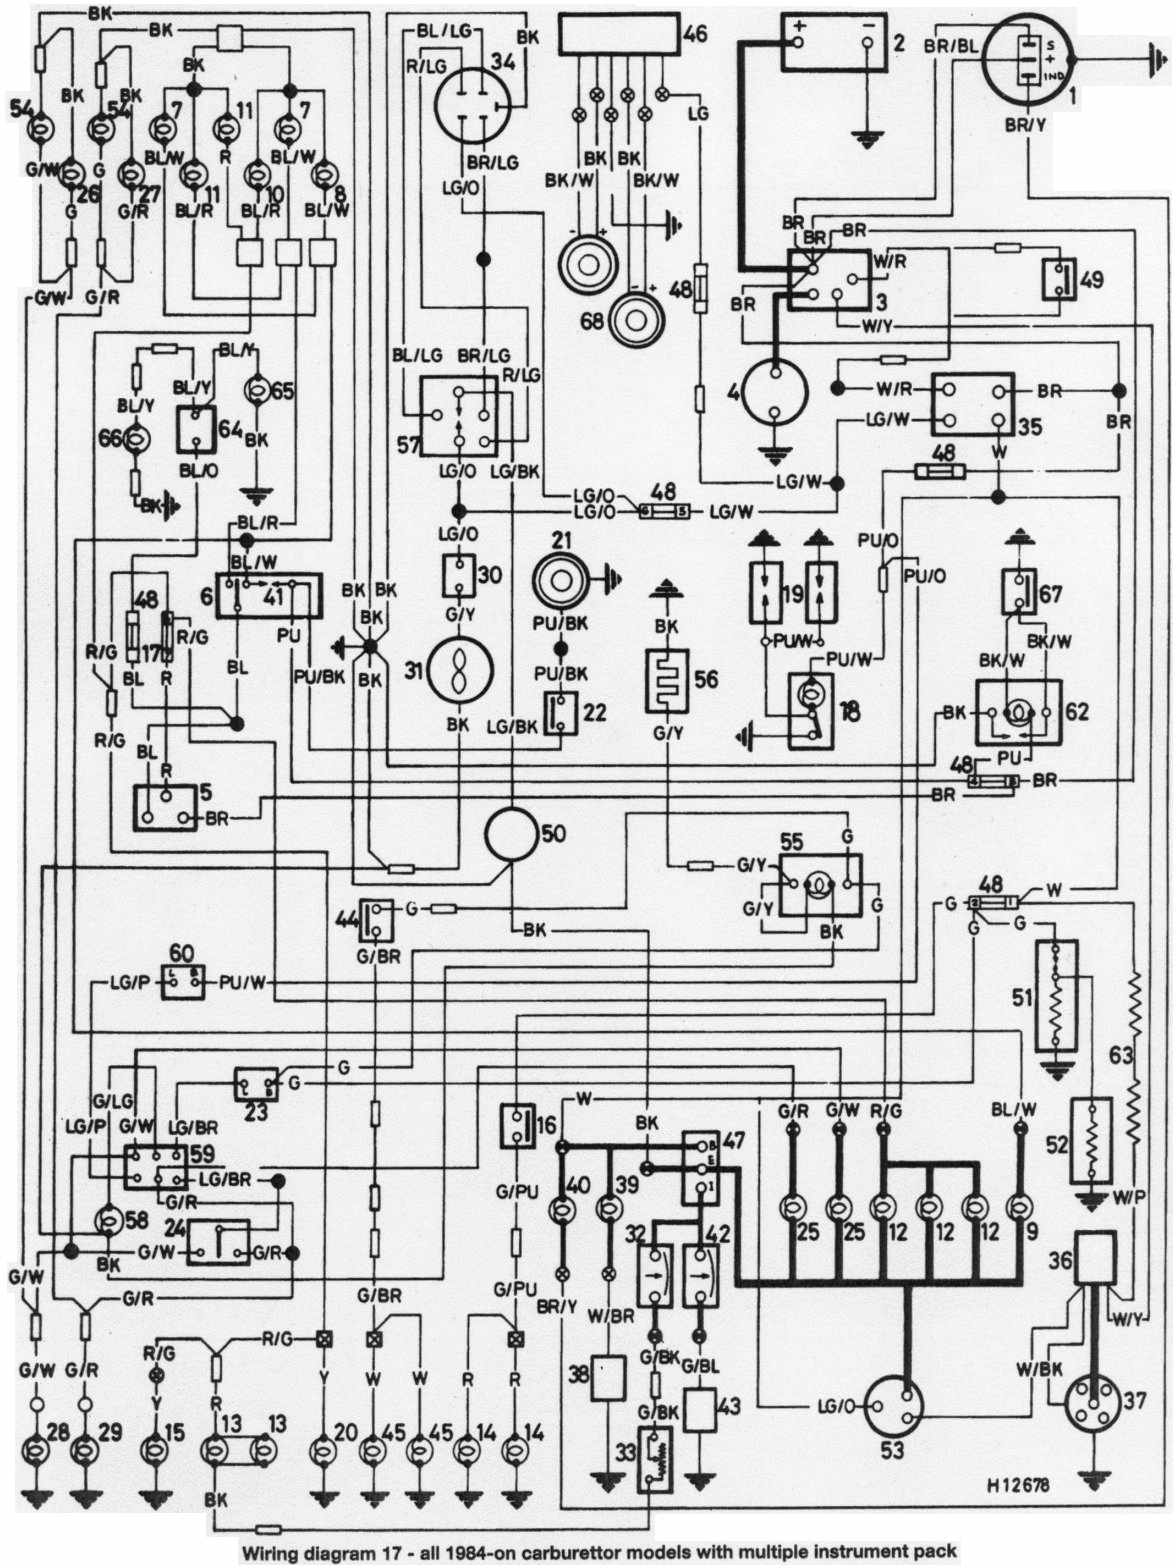 ct110 wiring diagram process diagram 50cc scooter wiring di… outstanding 1966 honda dream wiring diagram pictures best image wiring diagram of 1984 onwards all mini